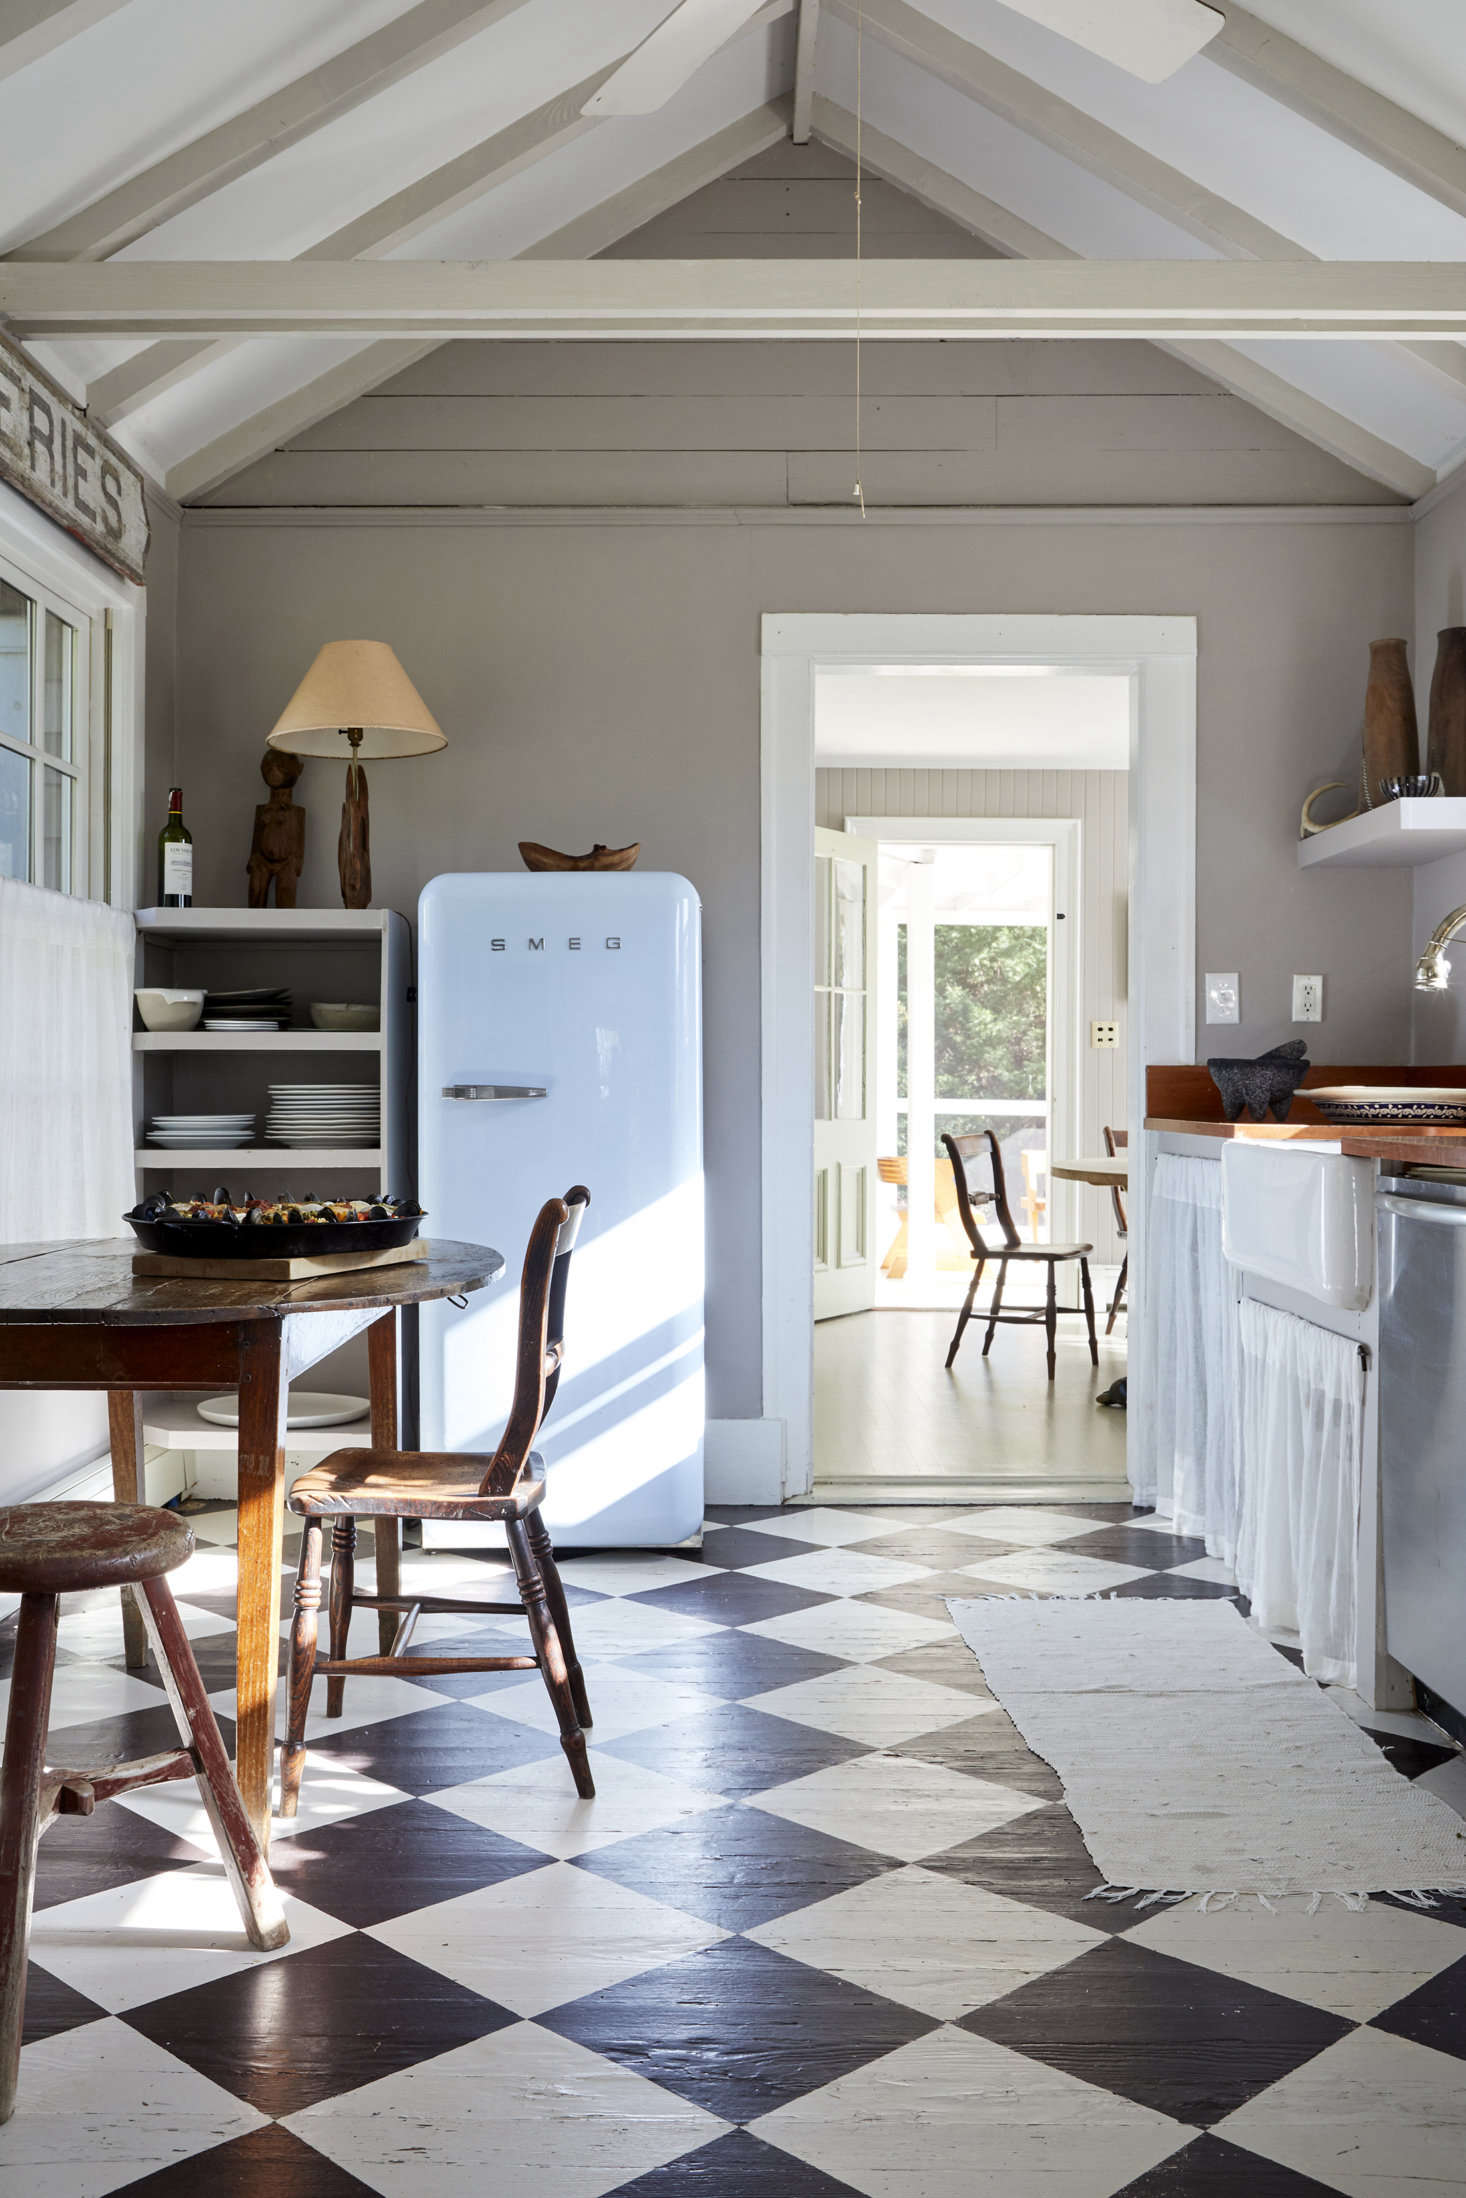 One of our favorite farmhouse kitchens ever. Photograph by Dana Gallagher, styling by Hilary Robertson, from Steal This Look: An Antique Dealer's DIY Kitchen, Painted Checkerboard Floor Included.